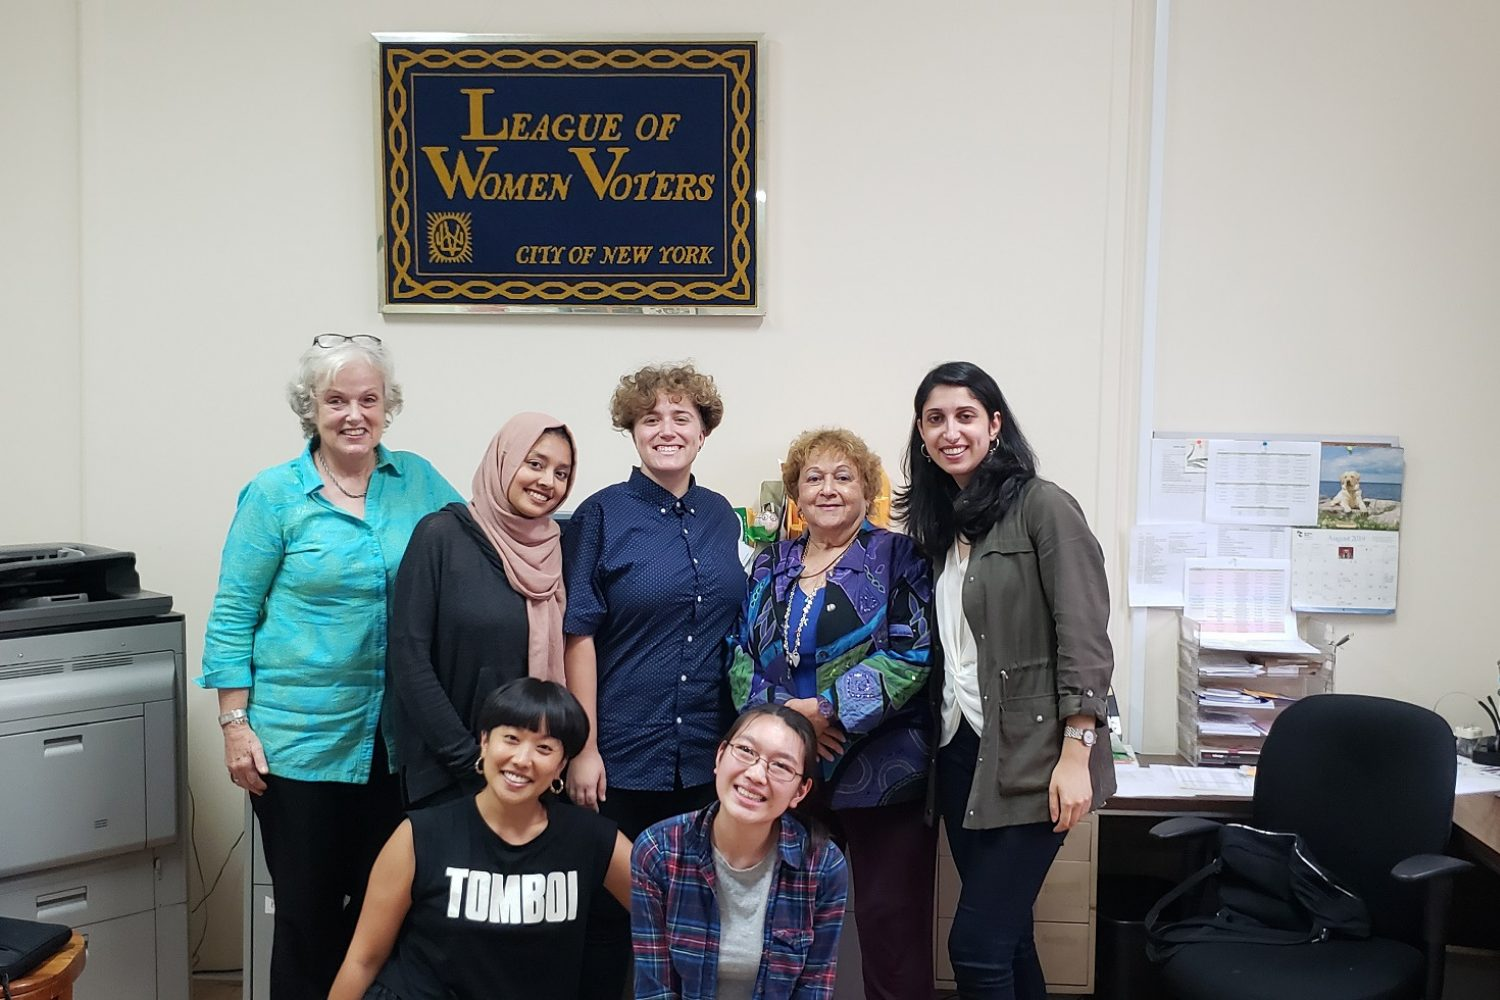 The League of Women Voters, Summer 2019